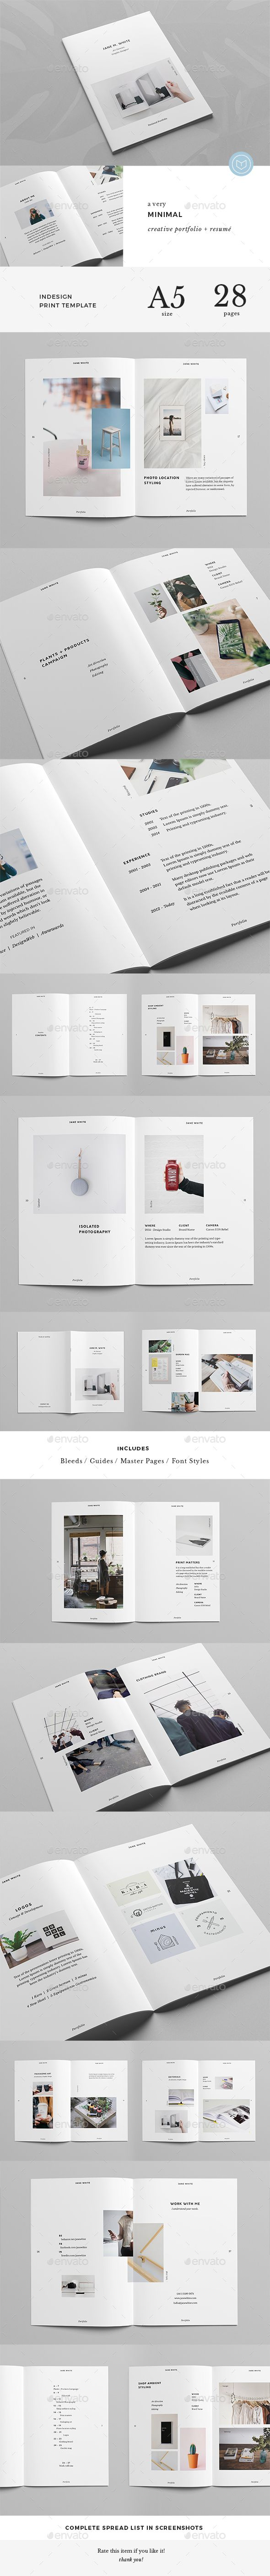 The Minimal Portfolio - Creative A5 Booklet with Resume - Portfolio Brochures